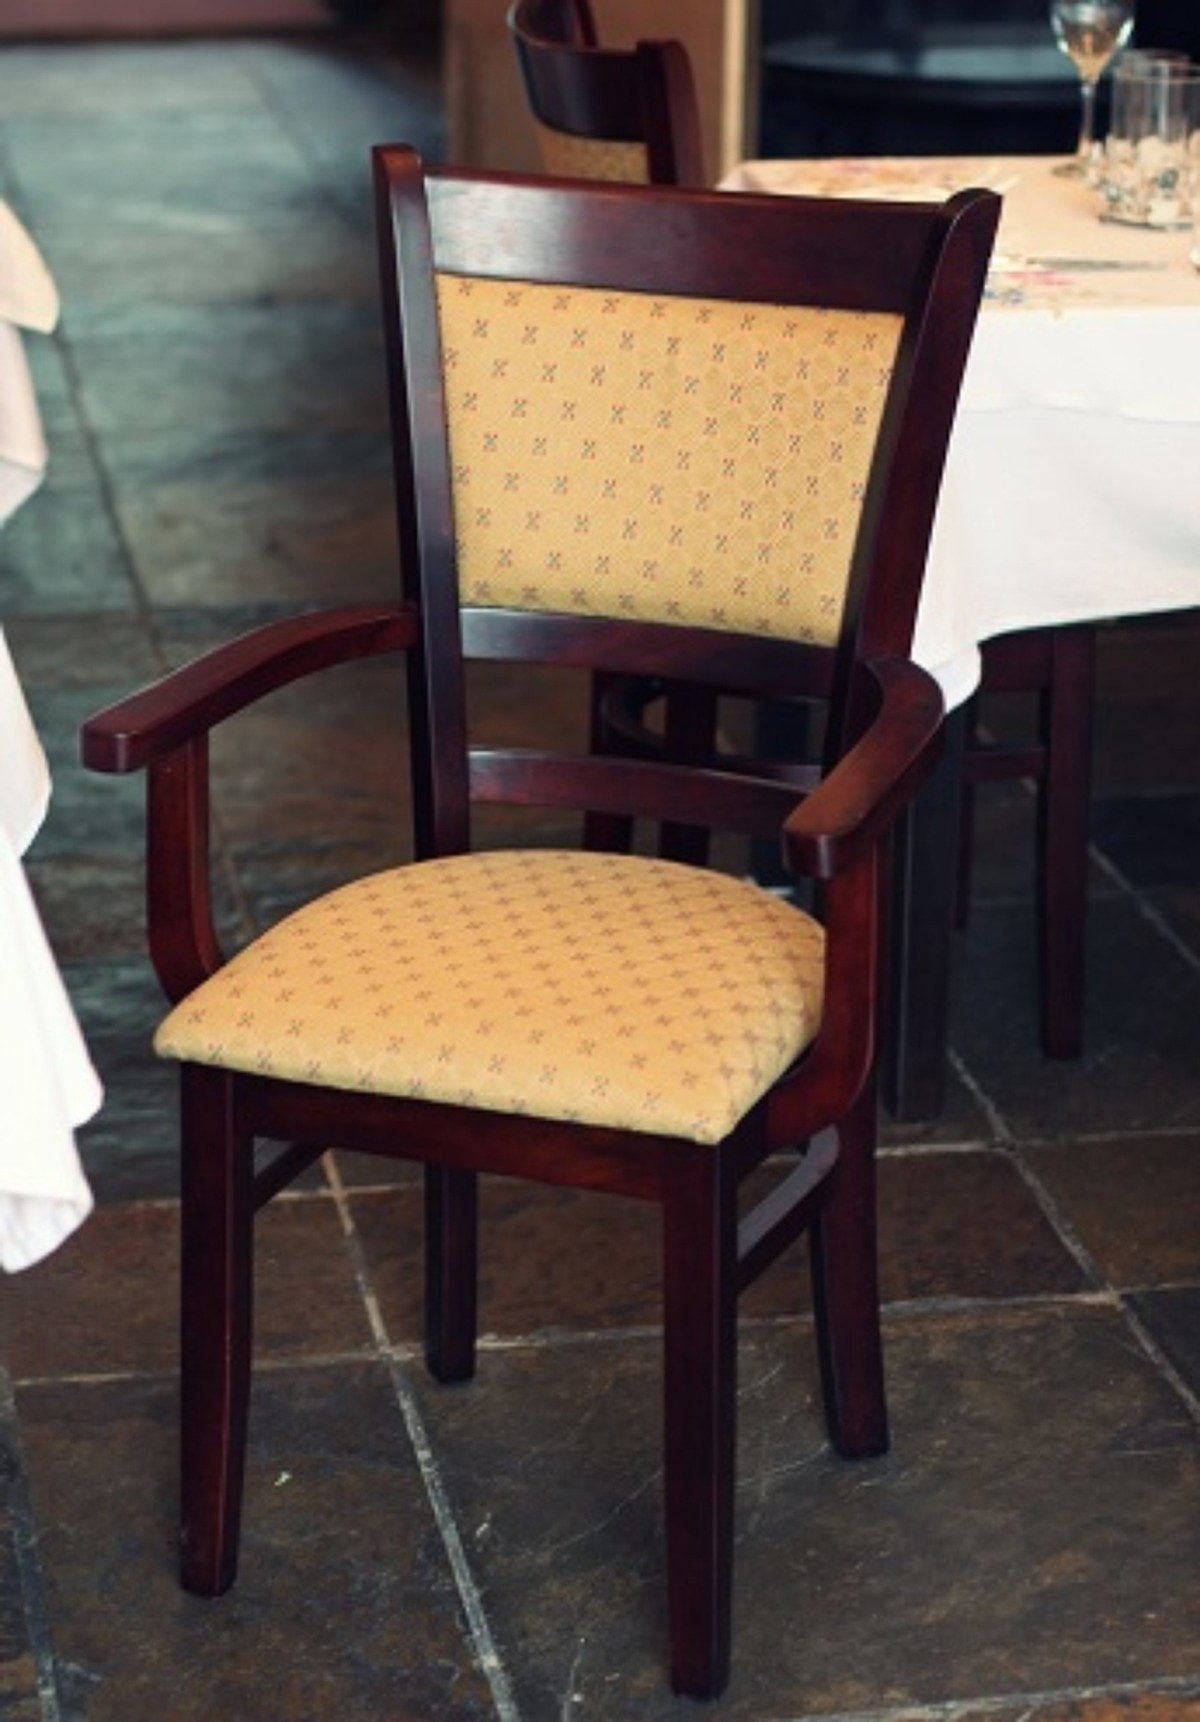 Restaurant Furniture London : Secondhand hotel furniture dining chairs boxed new